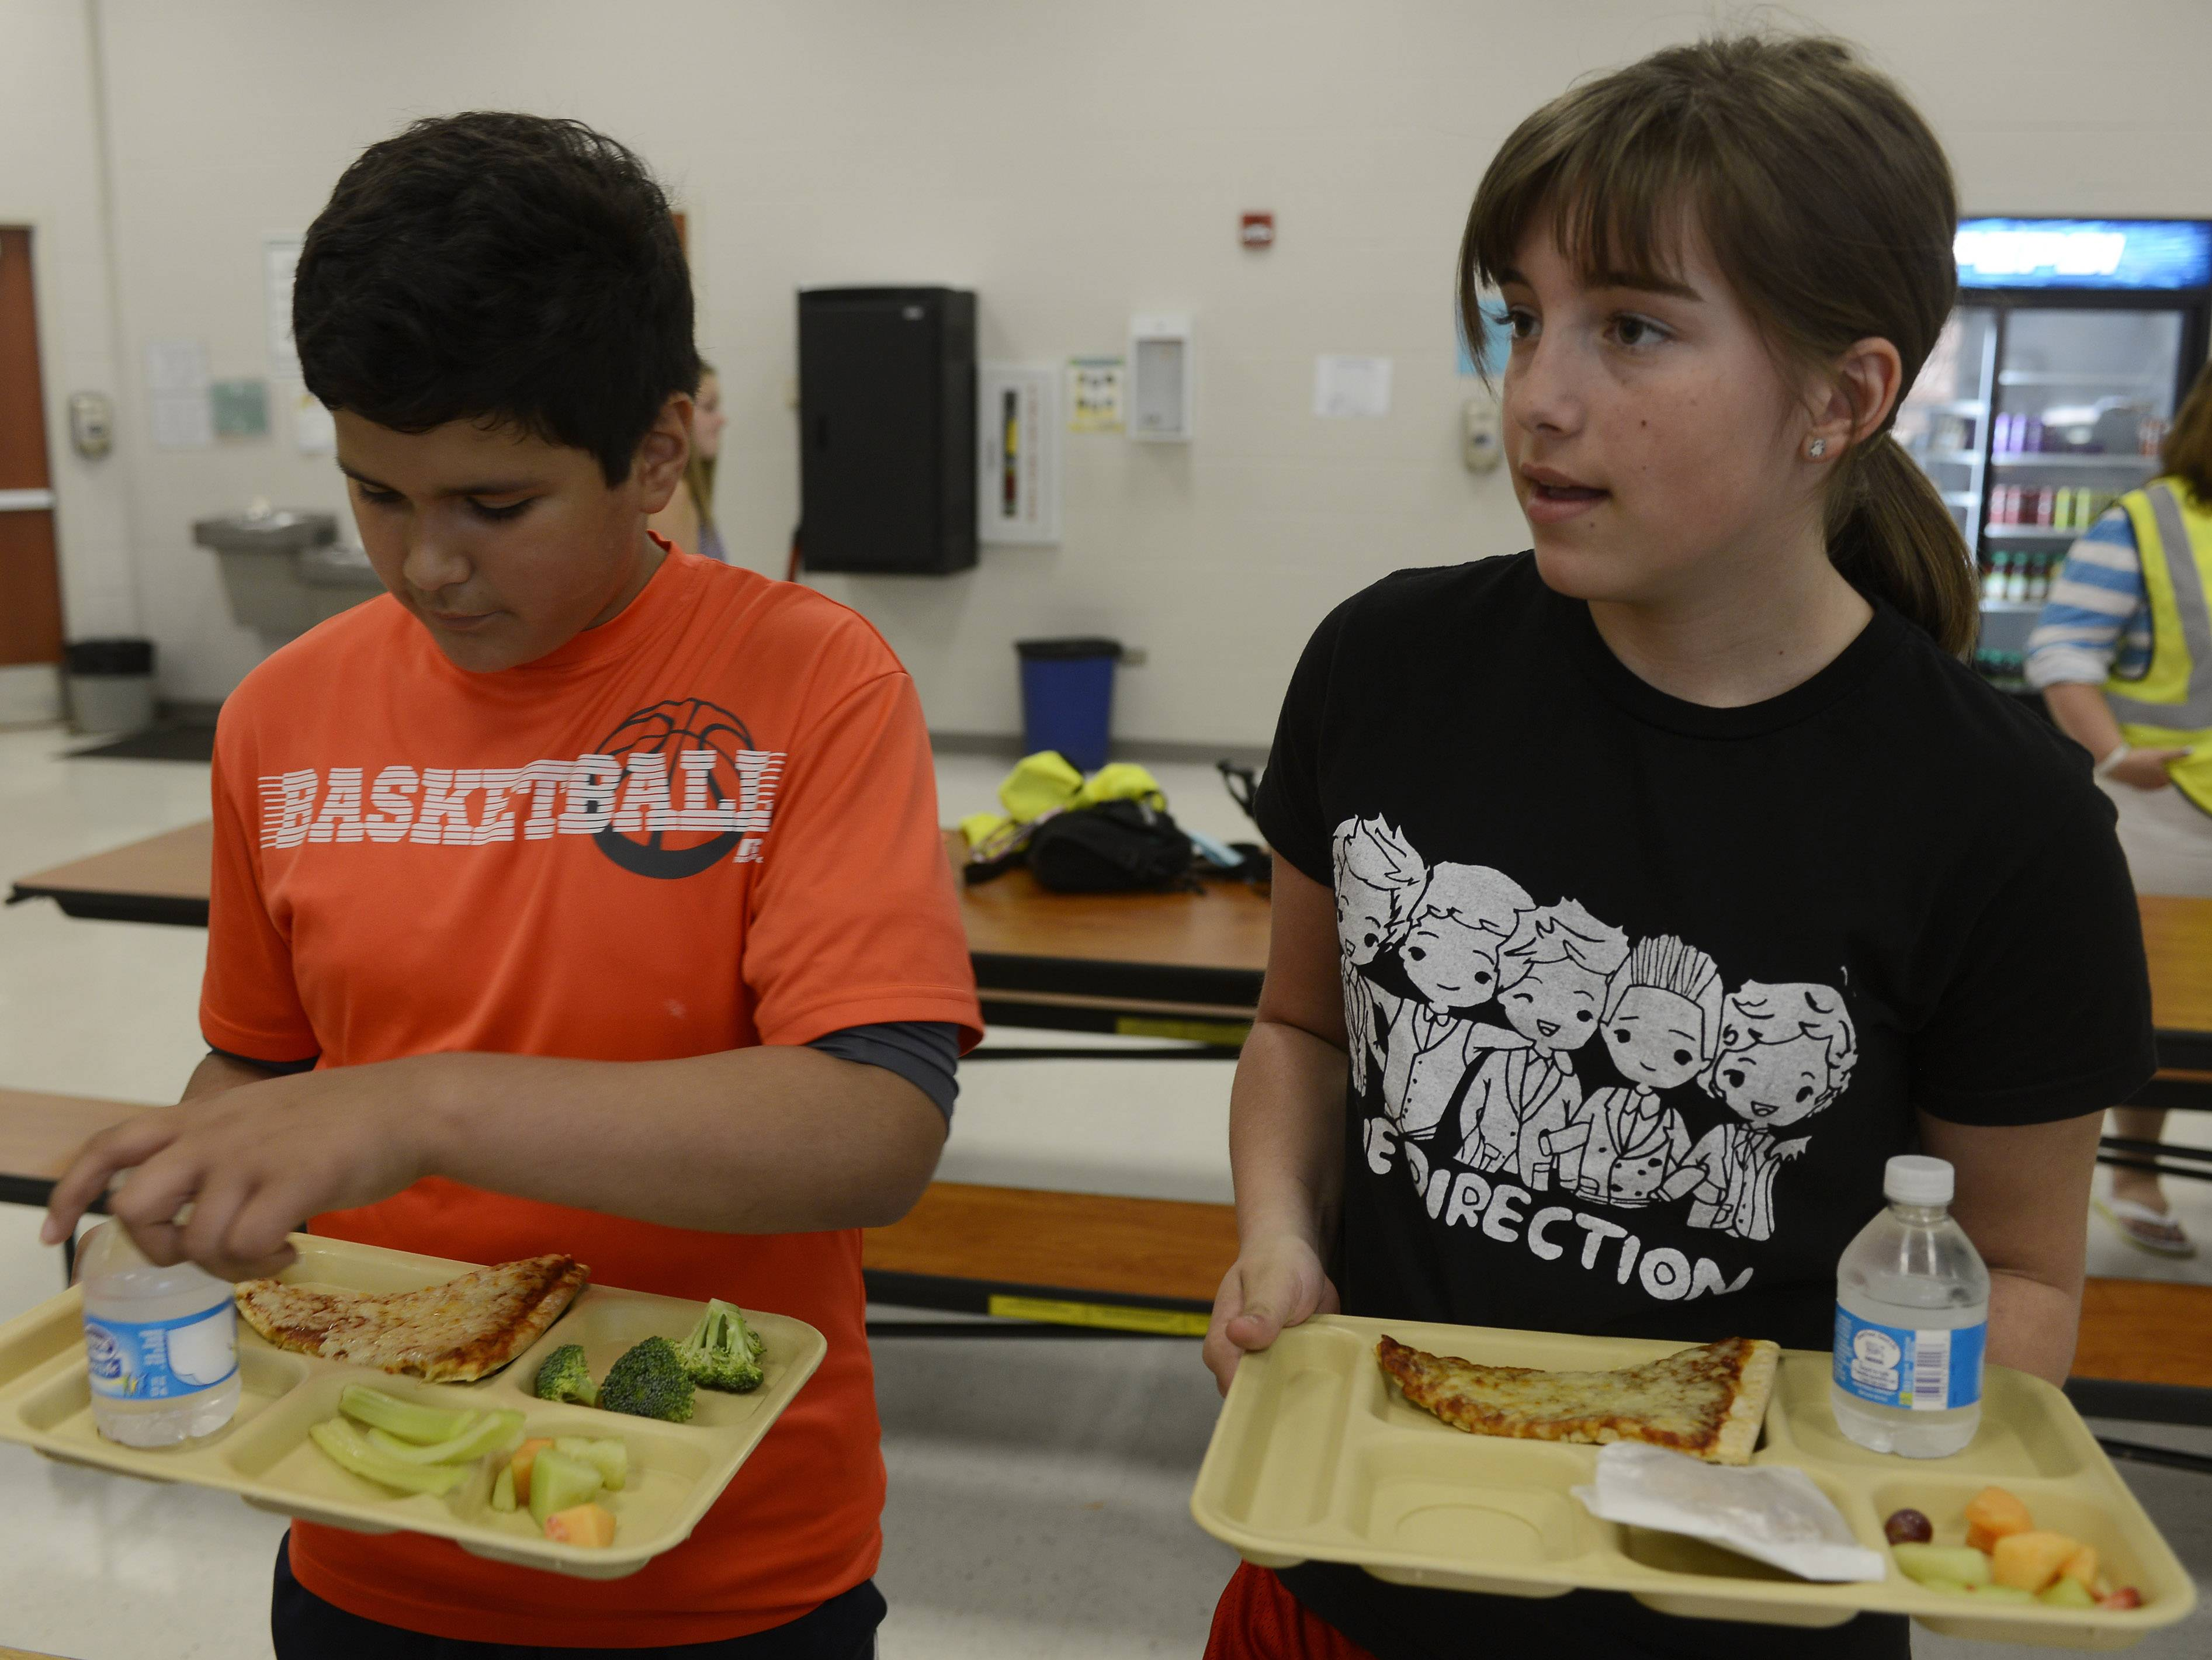 Anthony Martinez and Cheyenne Pellettiere, both fifth-graders, get a serving of vegetables in the lunchroom in May at Fremont Intermediate School near Mundelein. Rather than eliminating sweets, Fremont School District 79 permits students to have them as long as healthy food is also on the table.